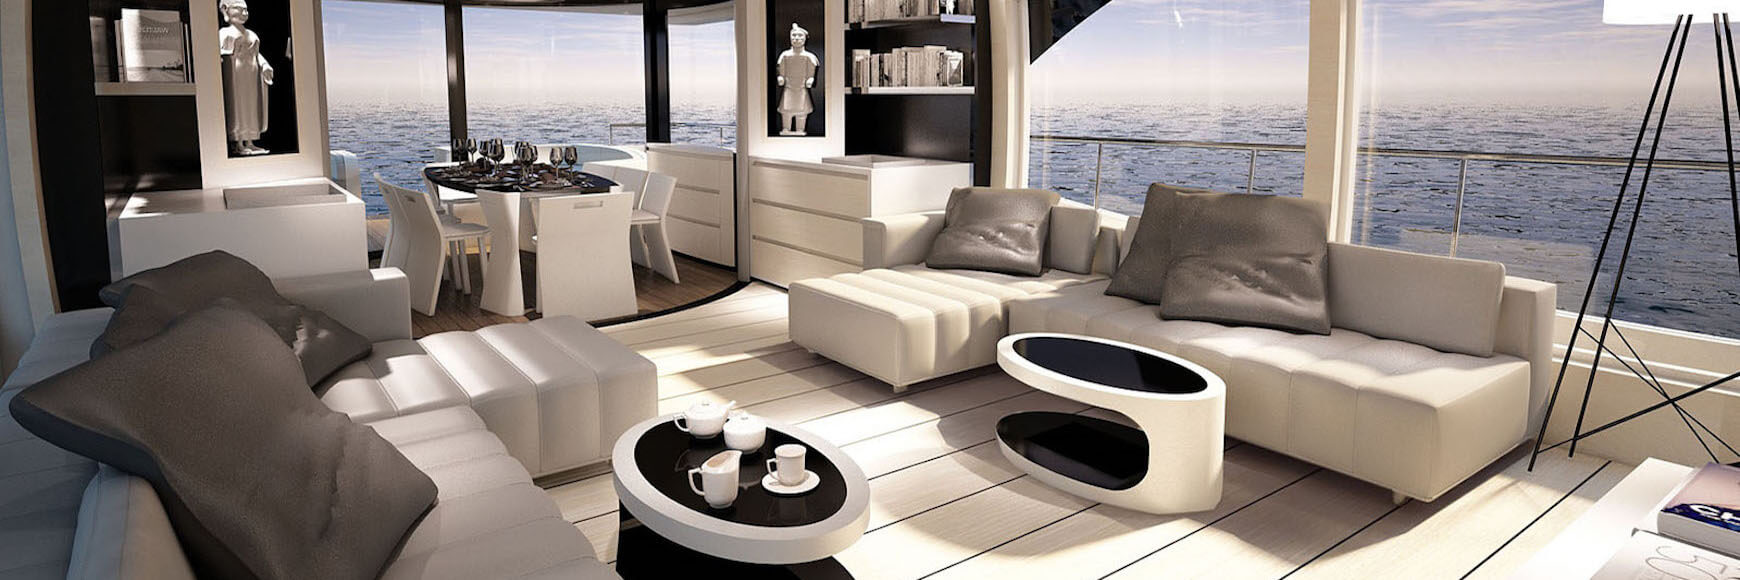 Rental luxury-yacht